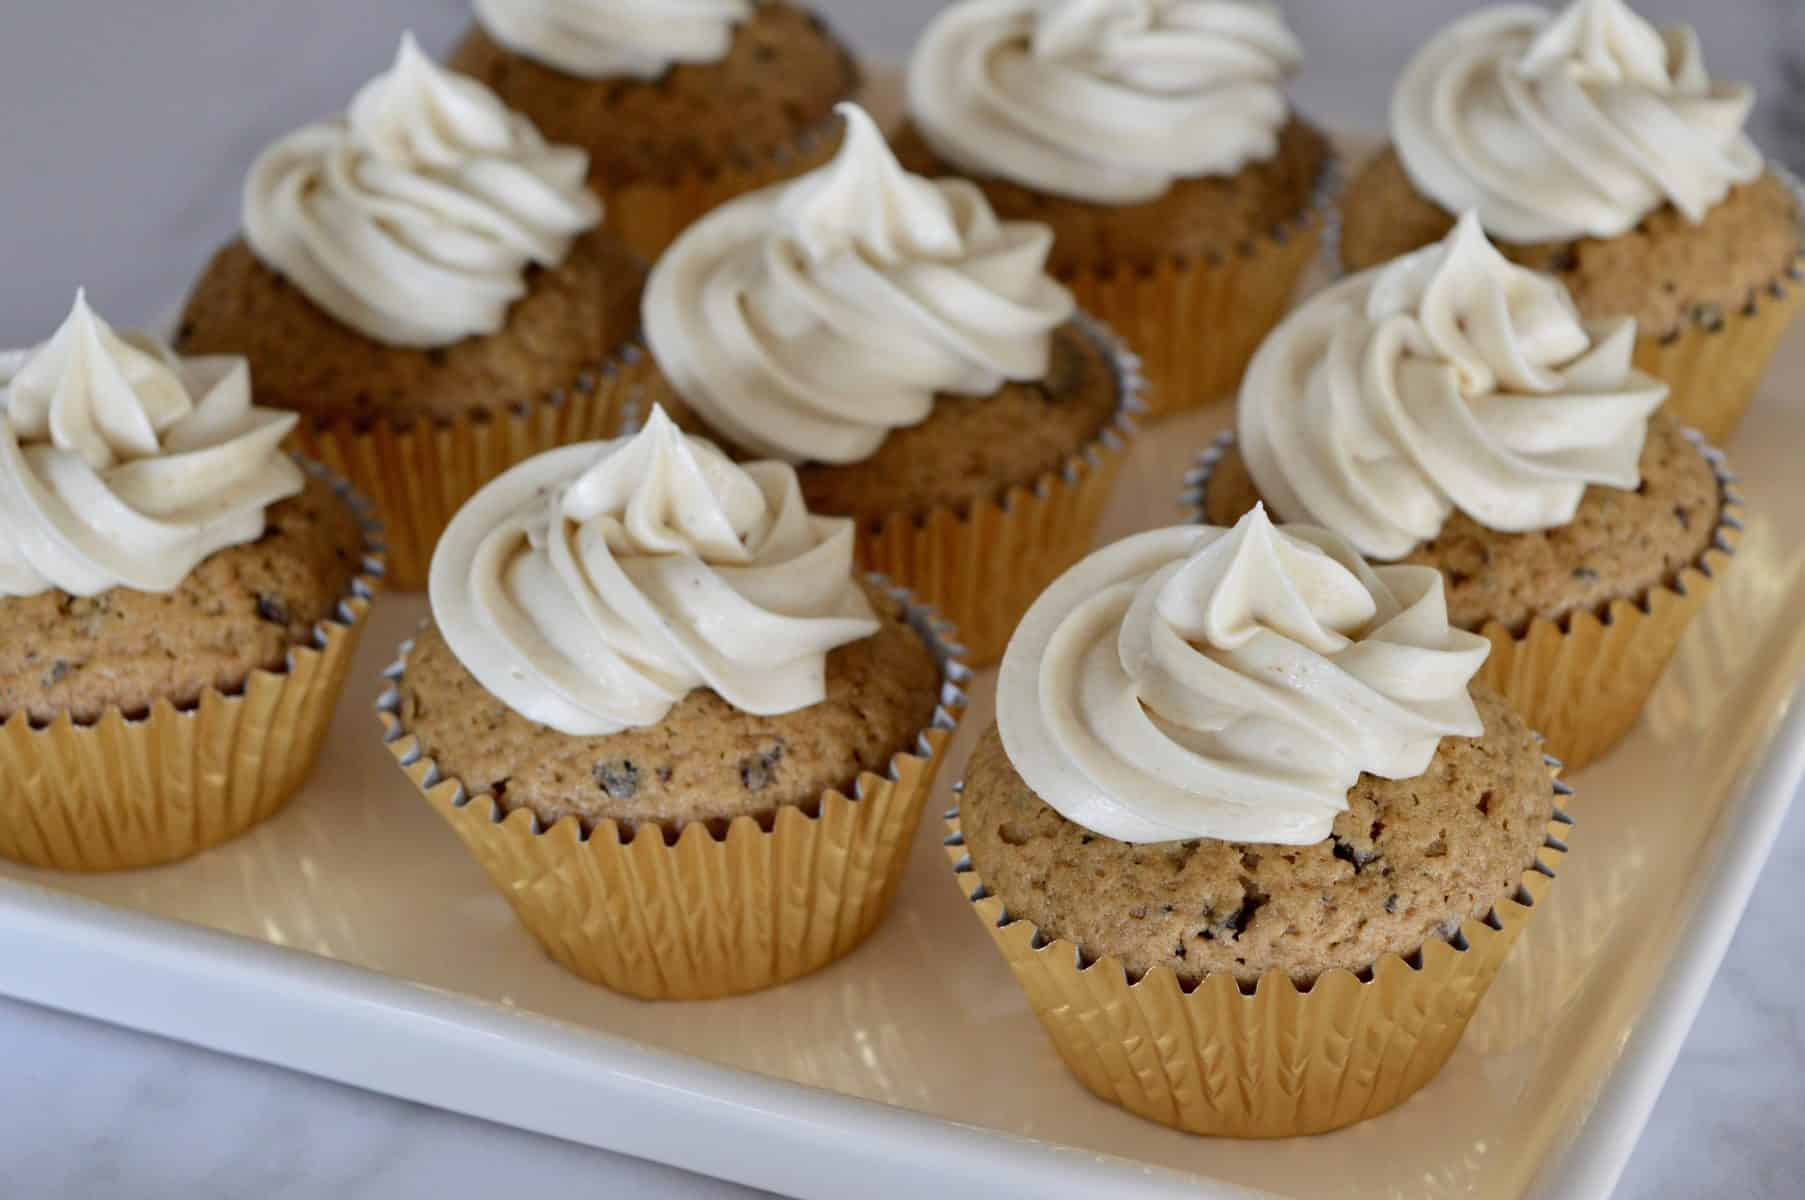 Espresso Cream Cheese frosting topped cupcakes.